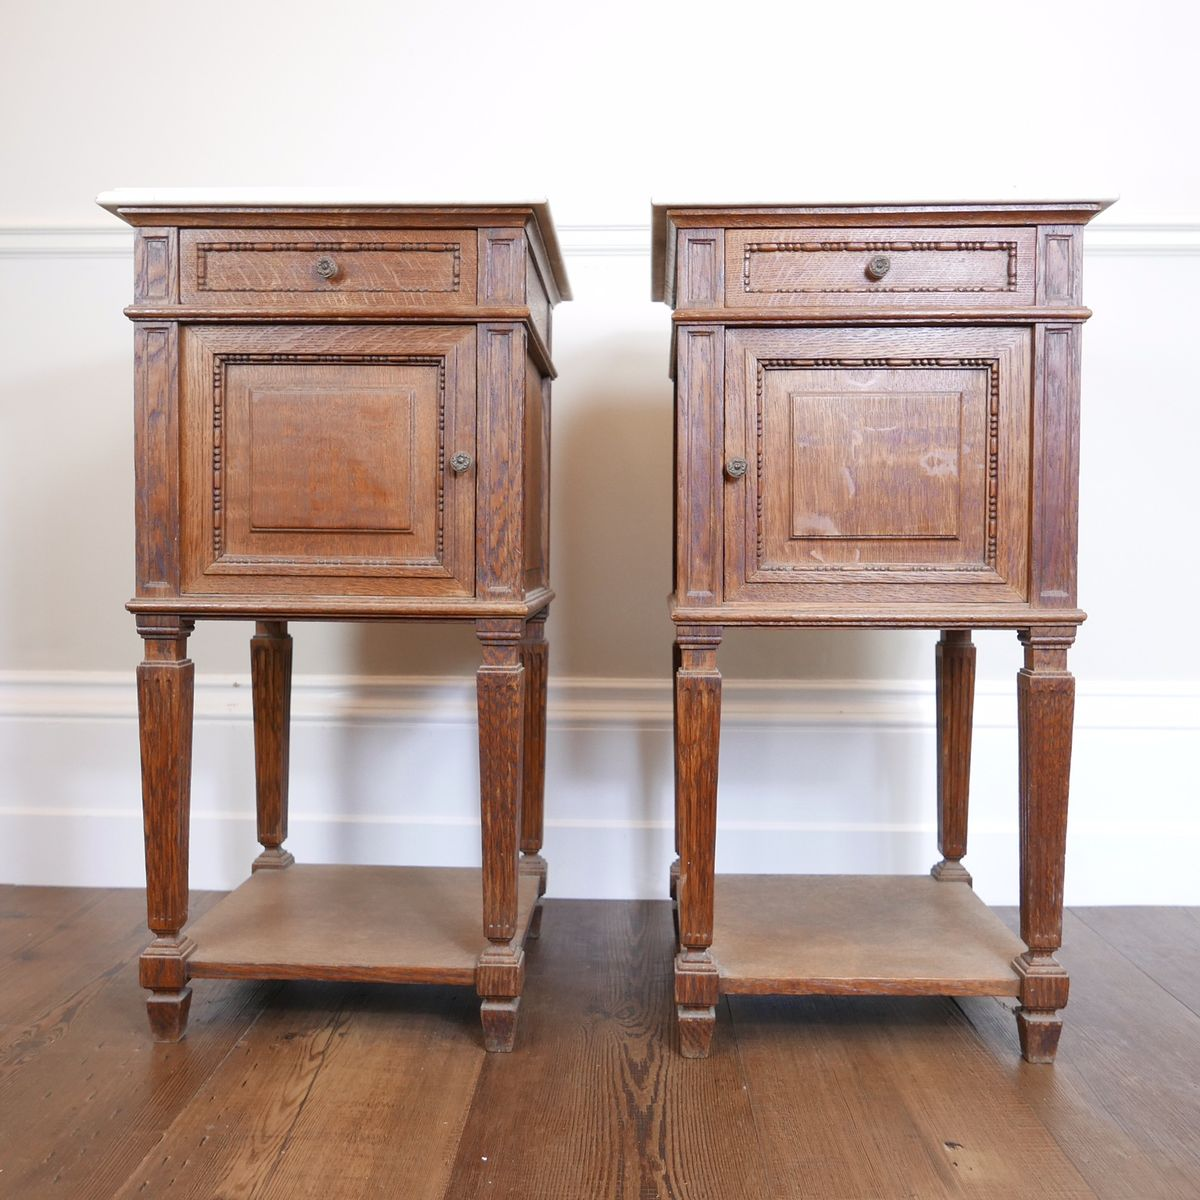 Vintage French Bedside Tables, Set of 2. Holiday Sale - Vintage French Bedside Tables, Set Of 2 For Sale At Pamono